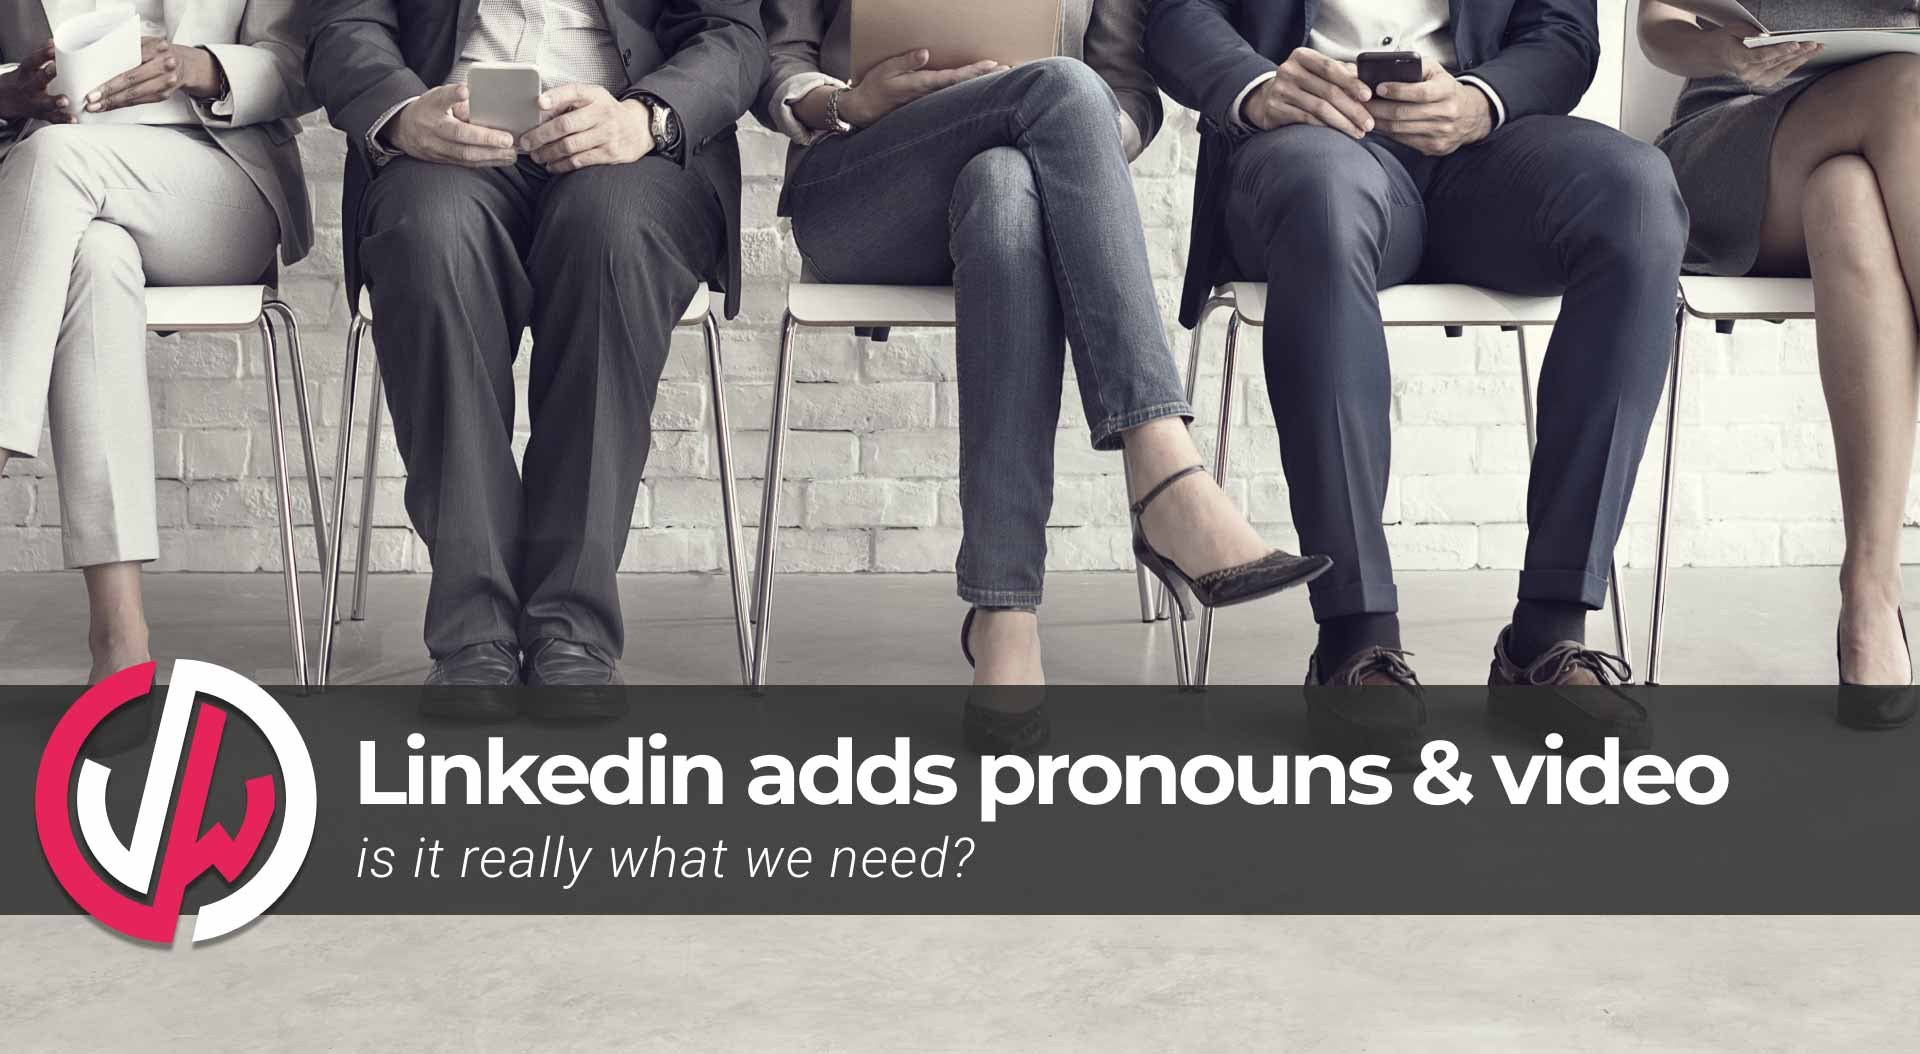 Linkedin adds pronouns and video - is it really what we need?